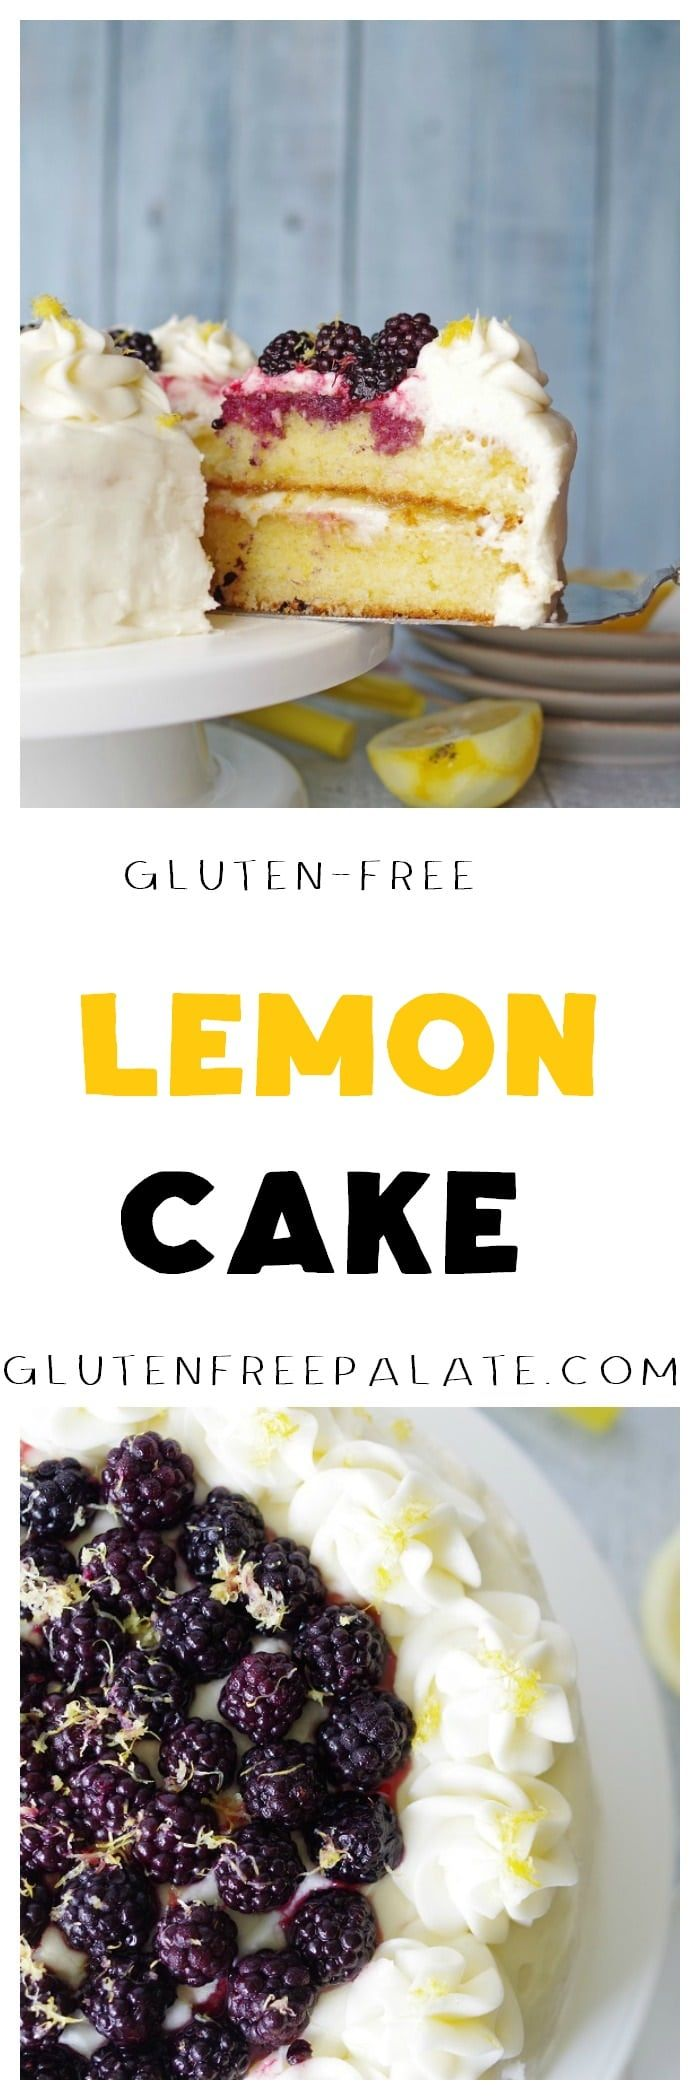 A layered cake filled with lemon curd and covered in a smooth, creamy lemon buttercream frosting, this Gluten-Free Lemon Cake will be the perfect addition to any holiday celebration. via @gfpalate